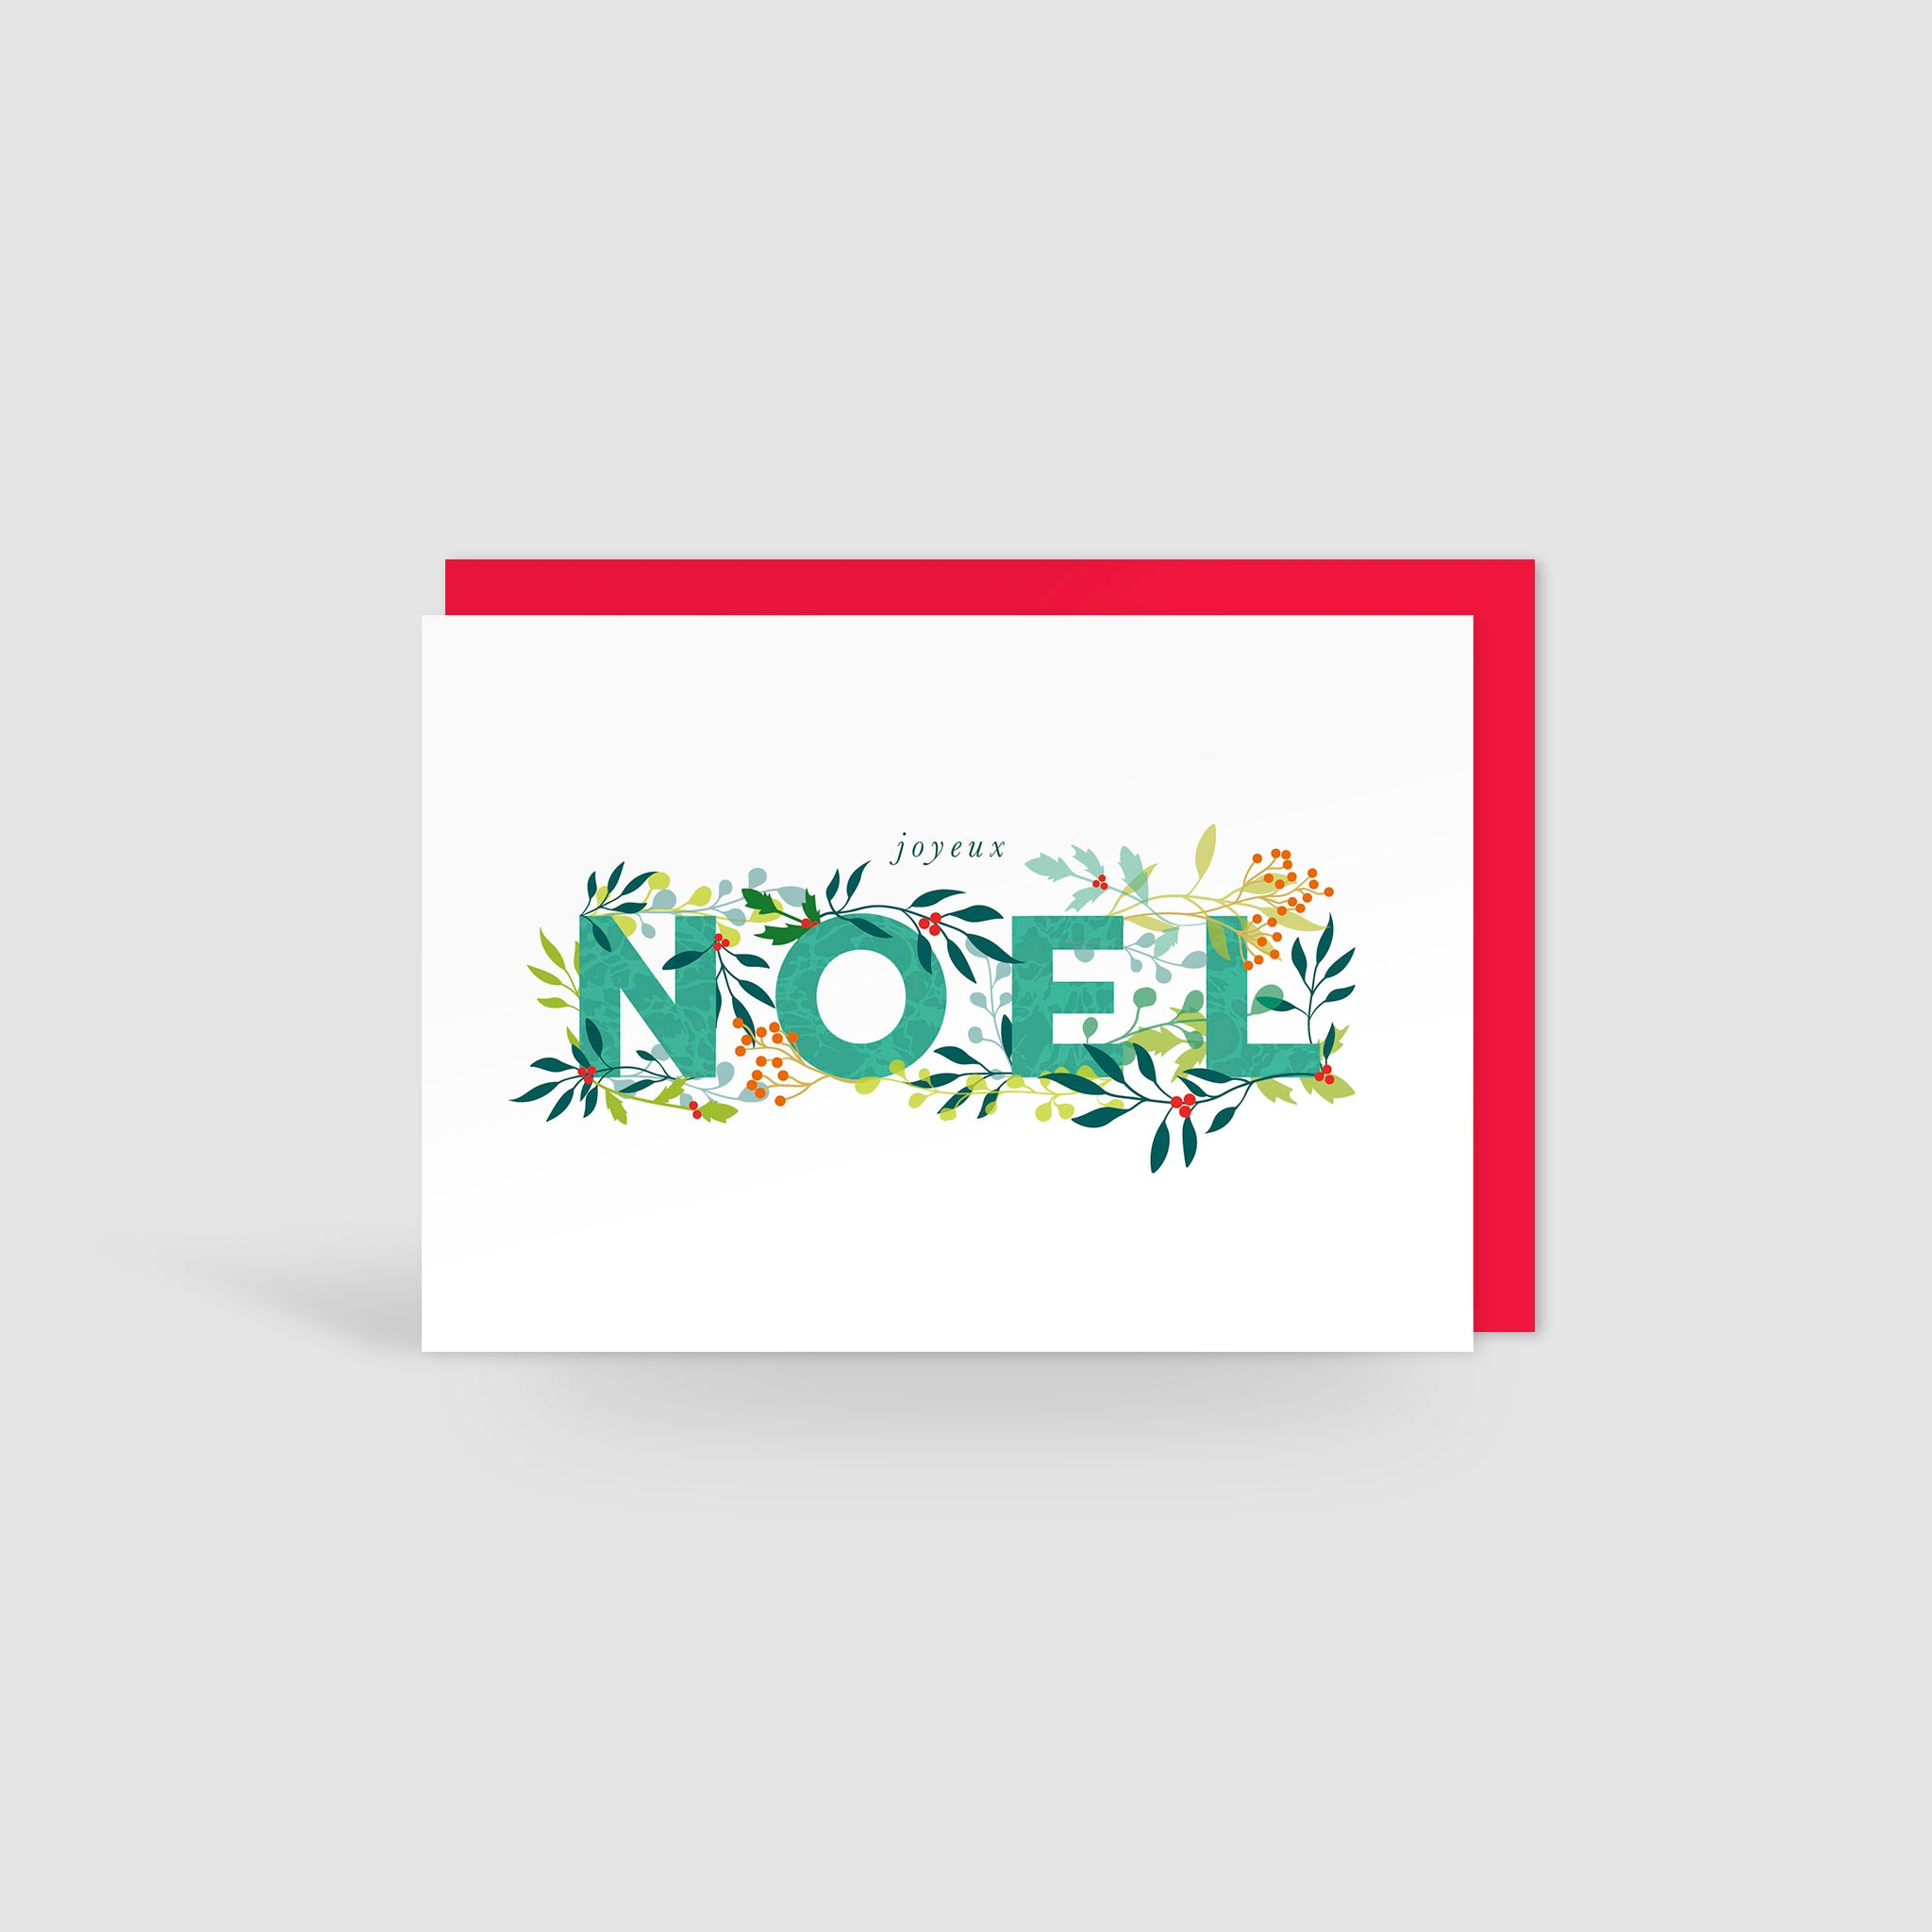 Joyeux Noel Holly Jolly Christmas Card